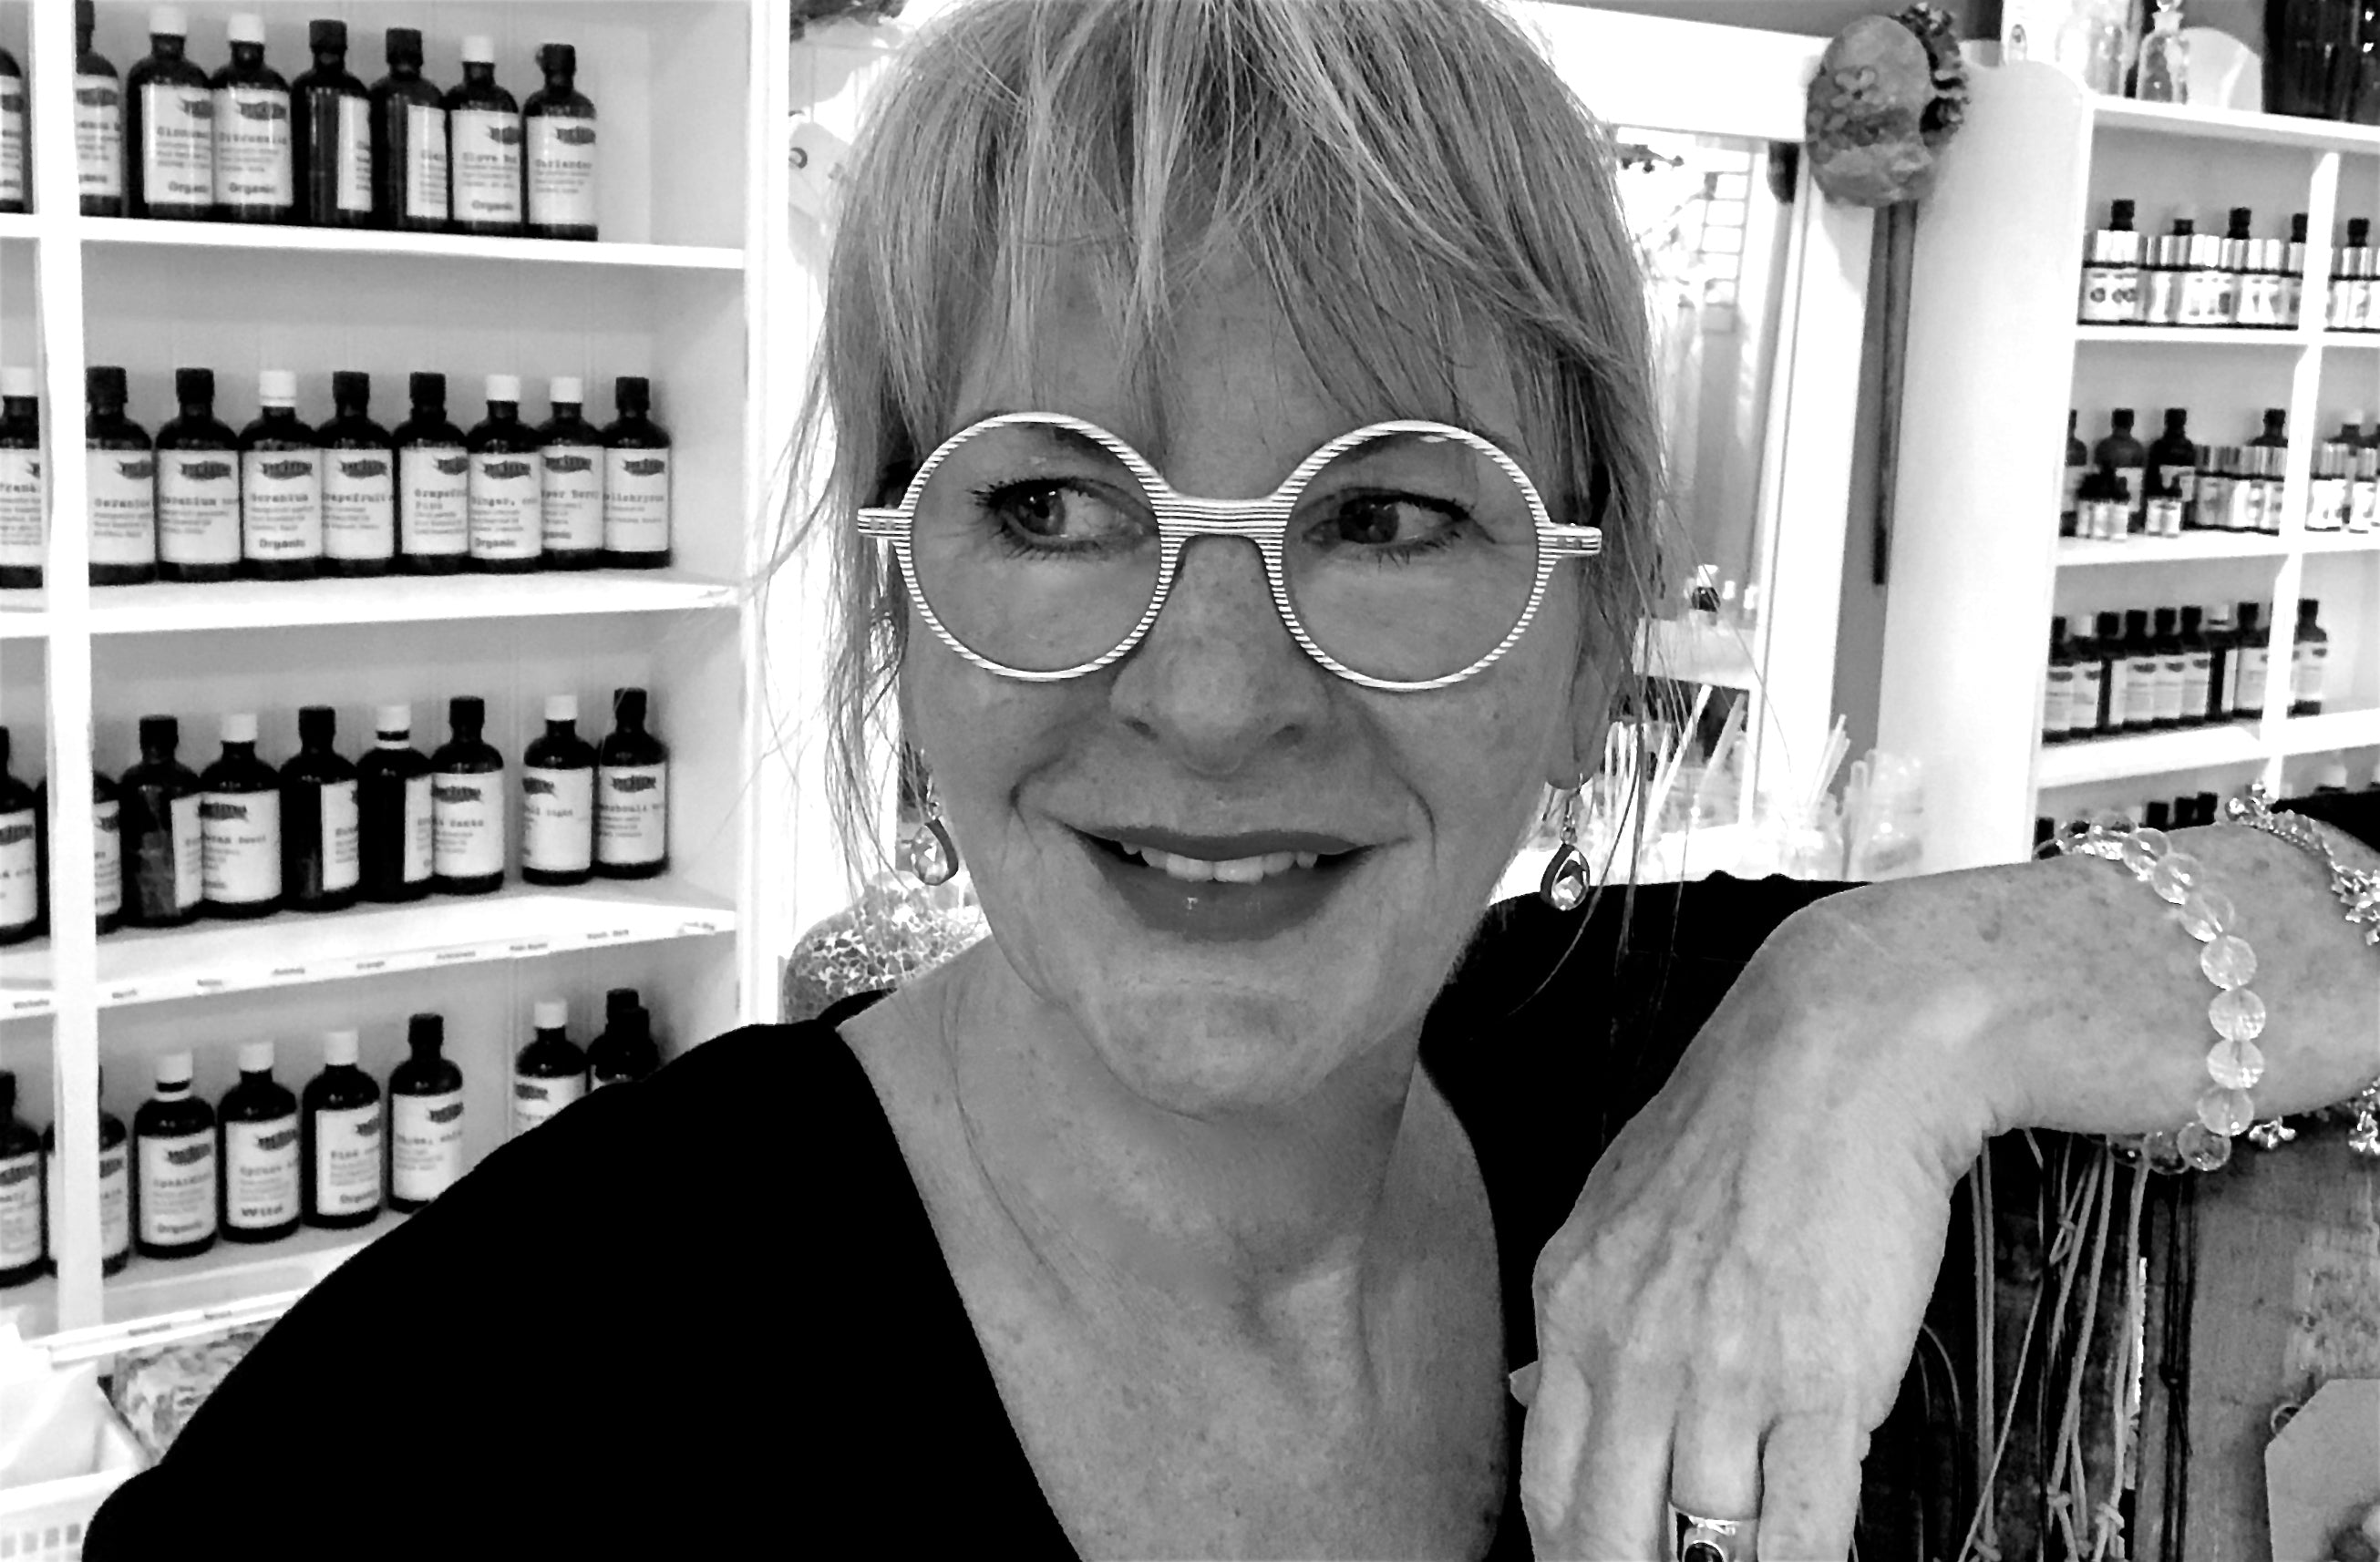 Sandra Topper is a Professional Aromatherapist and and an Artisanal Natural Perfumer who has worked with botanical essences since 1992.